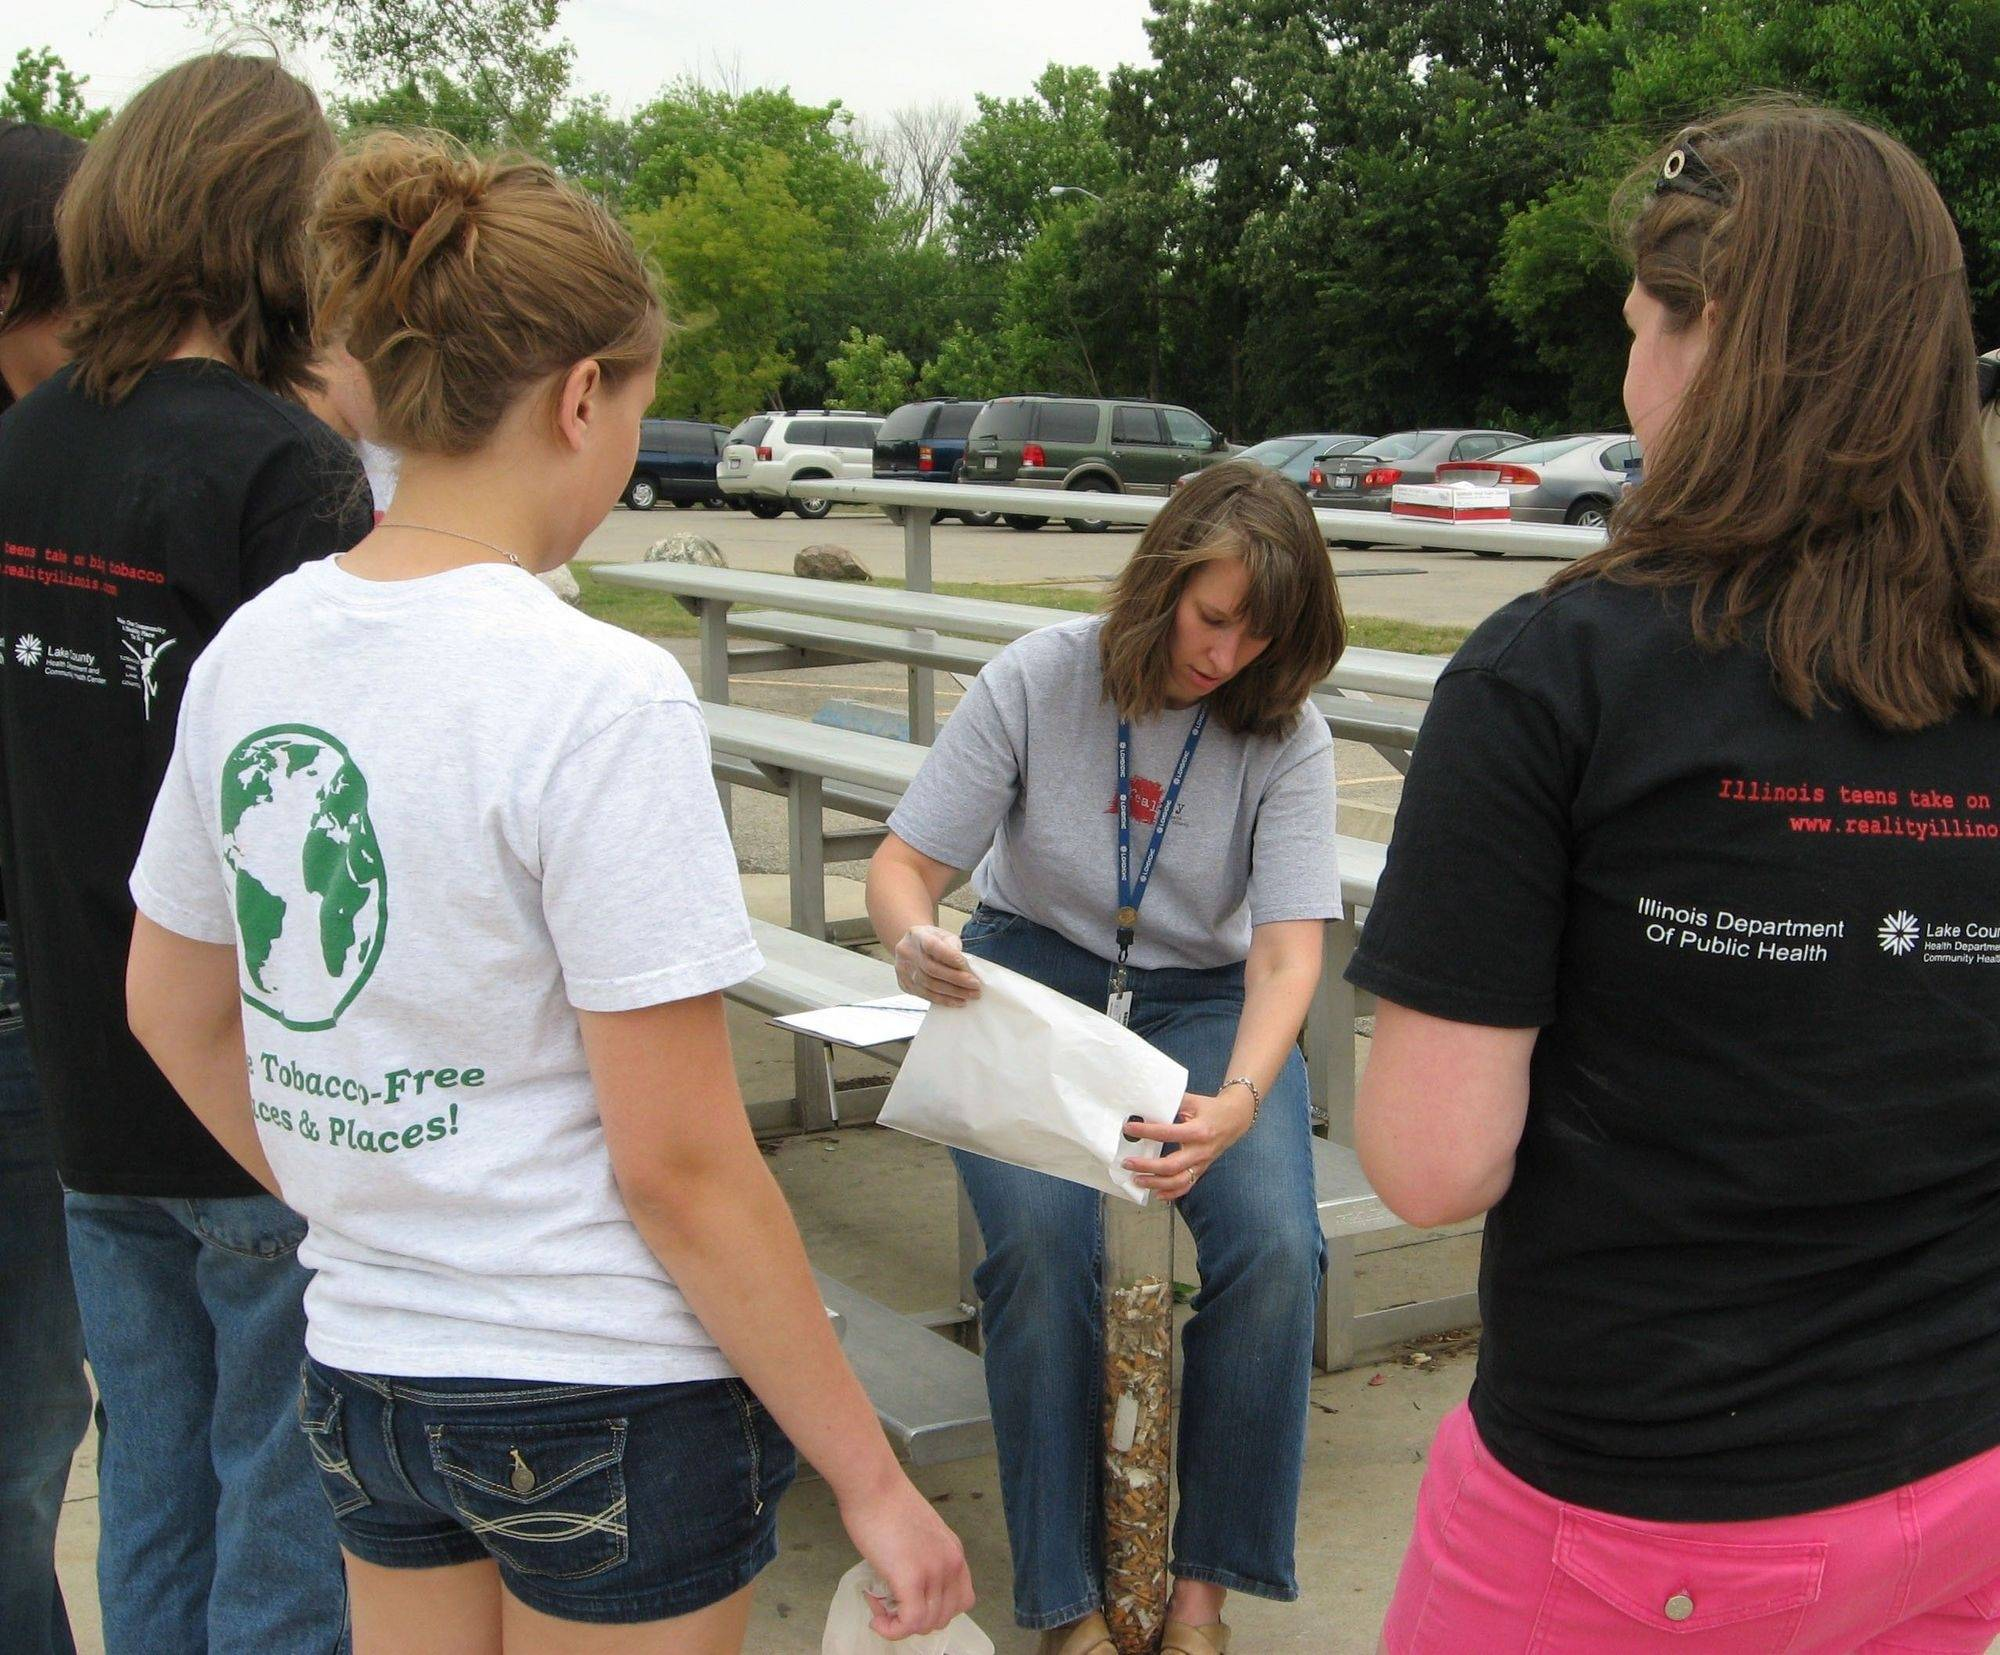 Teen members of REALITY Illinois watch as Barbara de Nekker fills a plastic tube with cigarette butts collected at the skate park in Round Lake Beach.